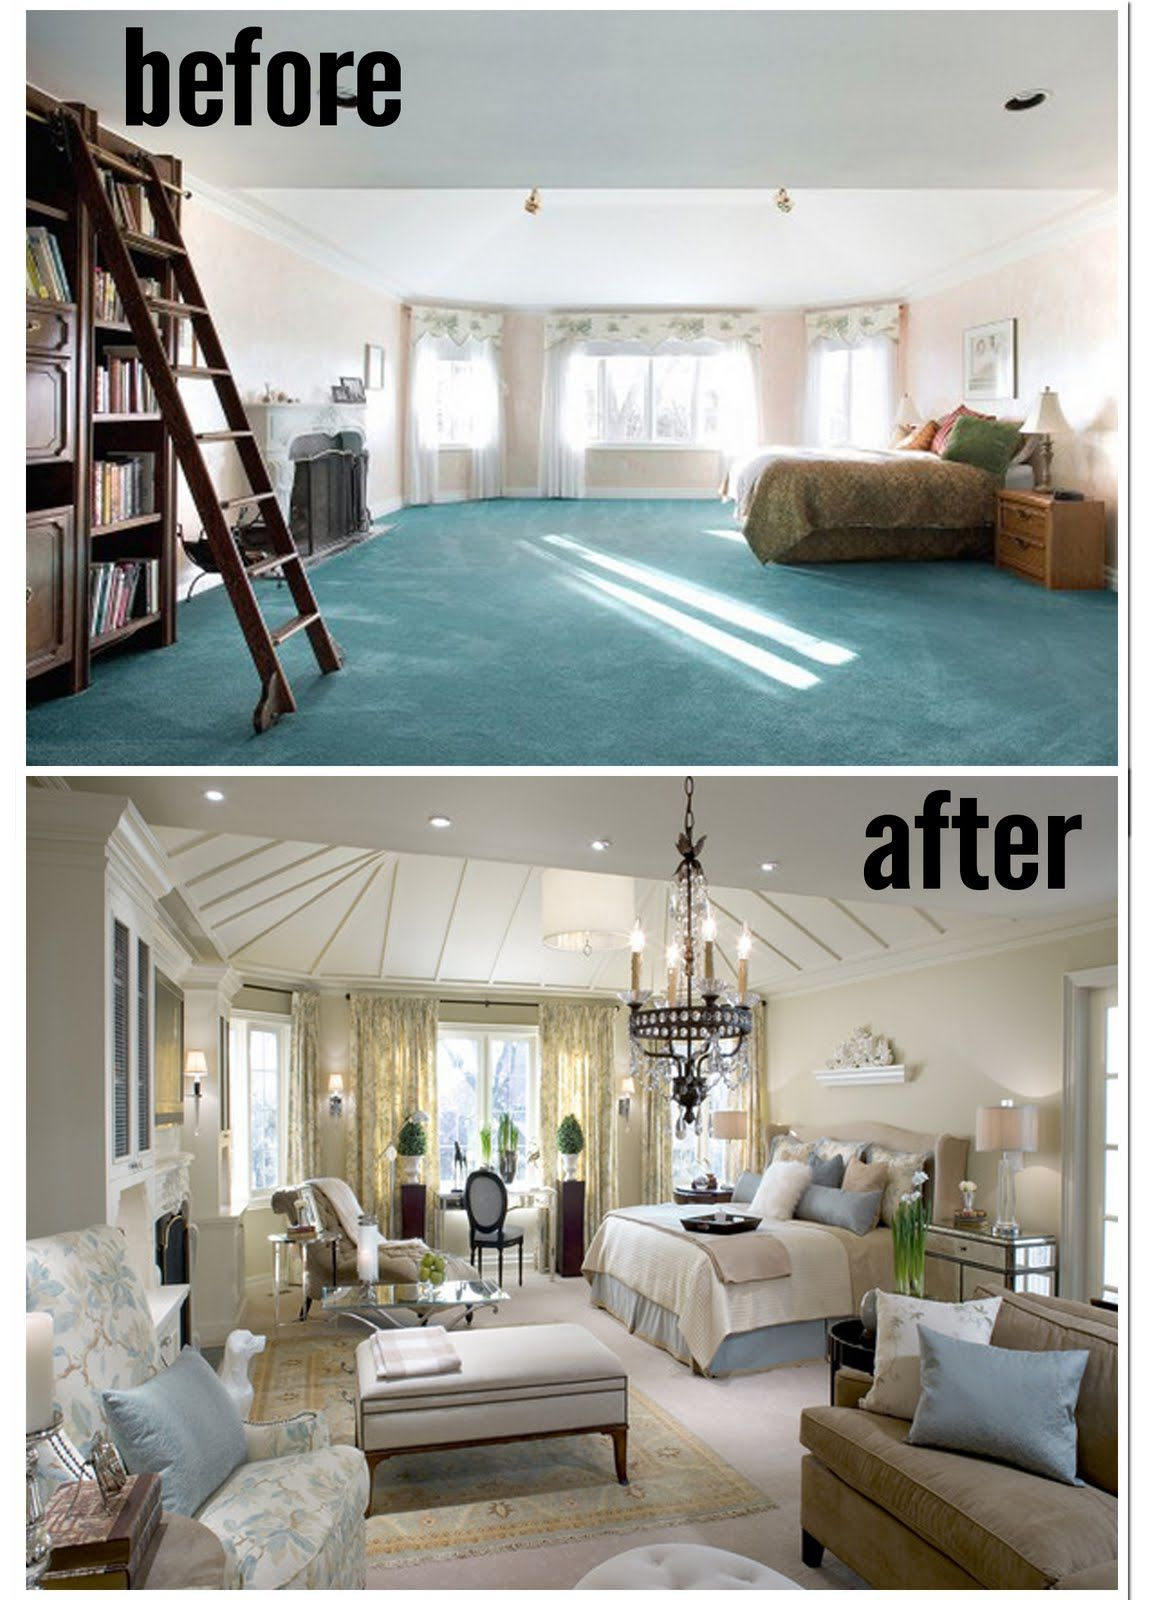 Unique master bedrooms - Amazing Before And After Master Bedrooms By Candice Olson Now That S How You Do A